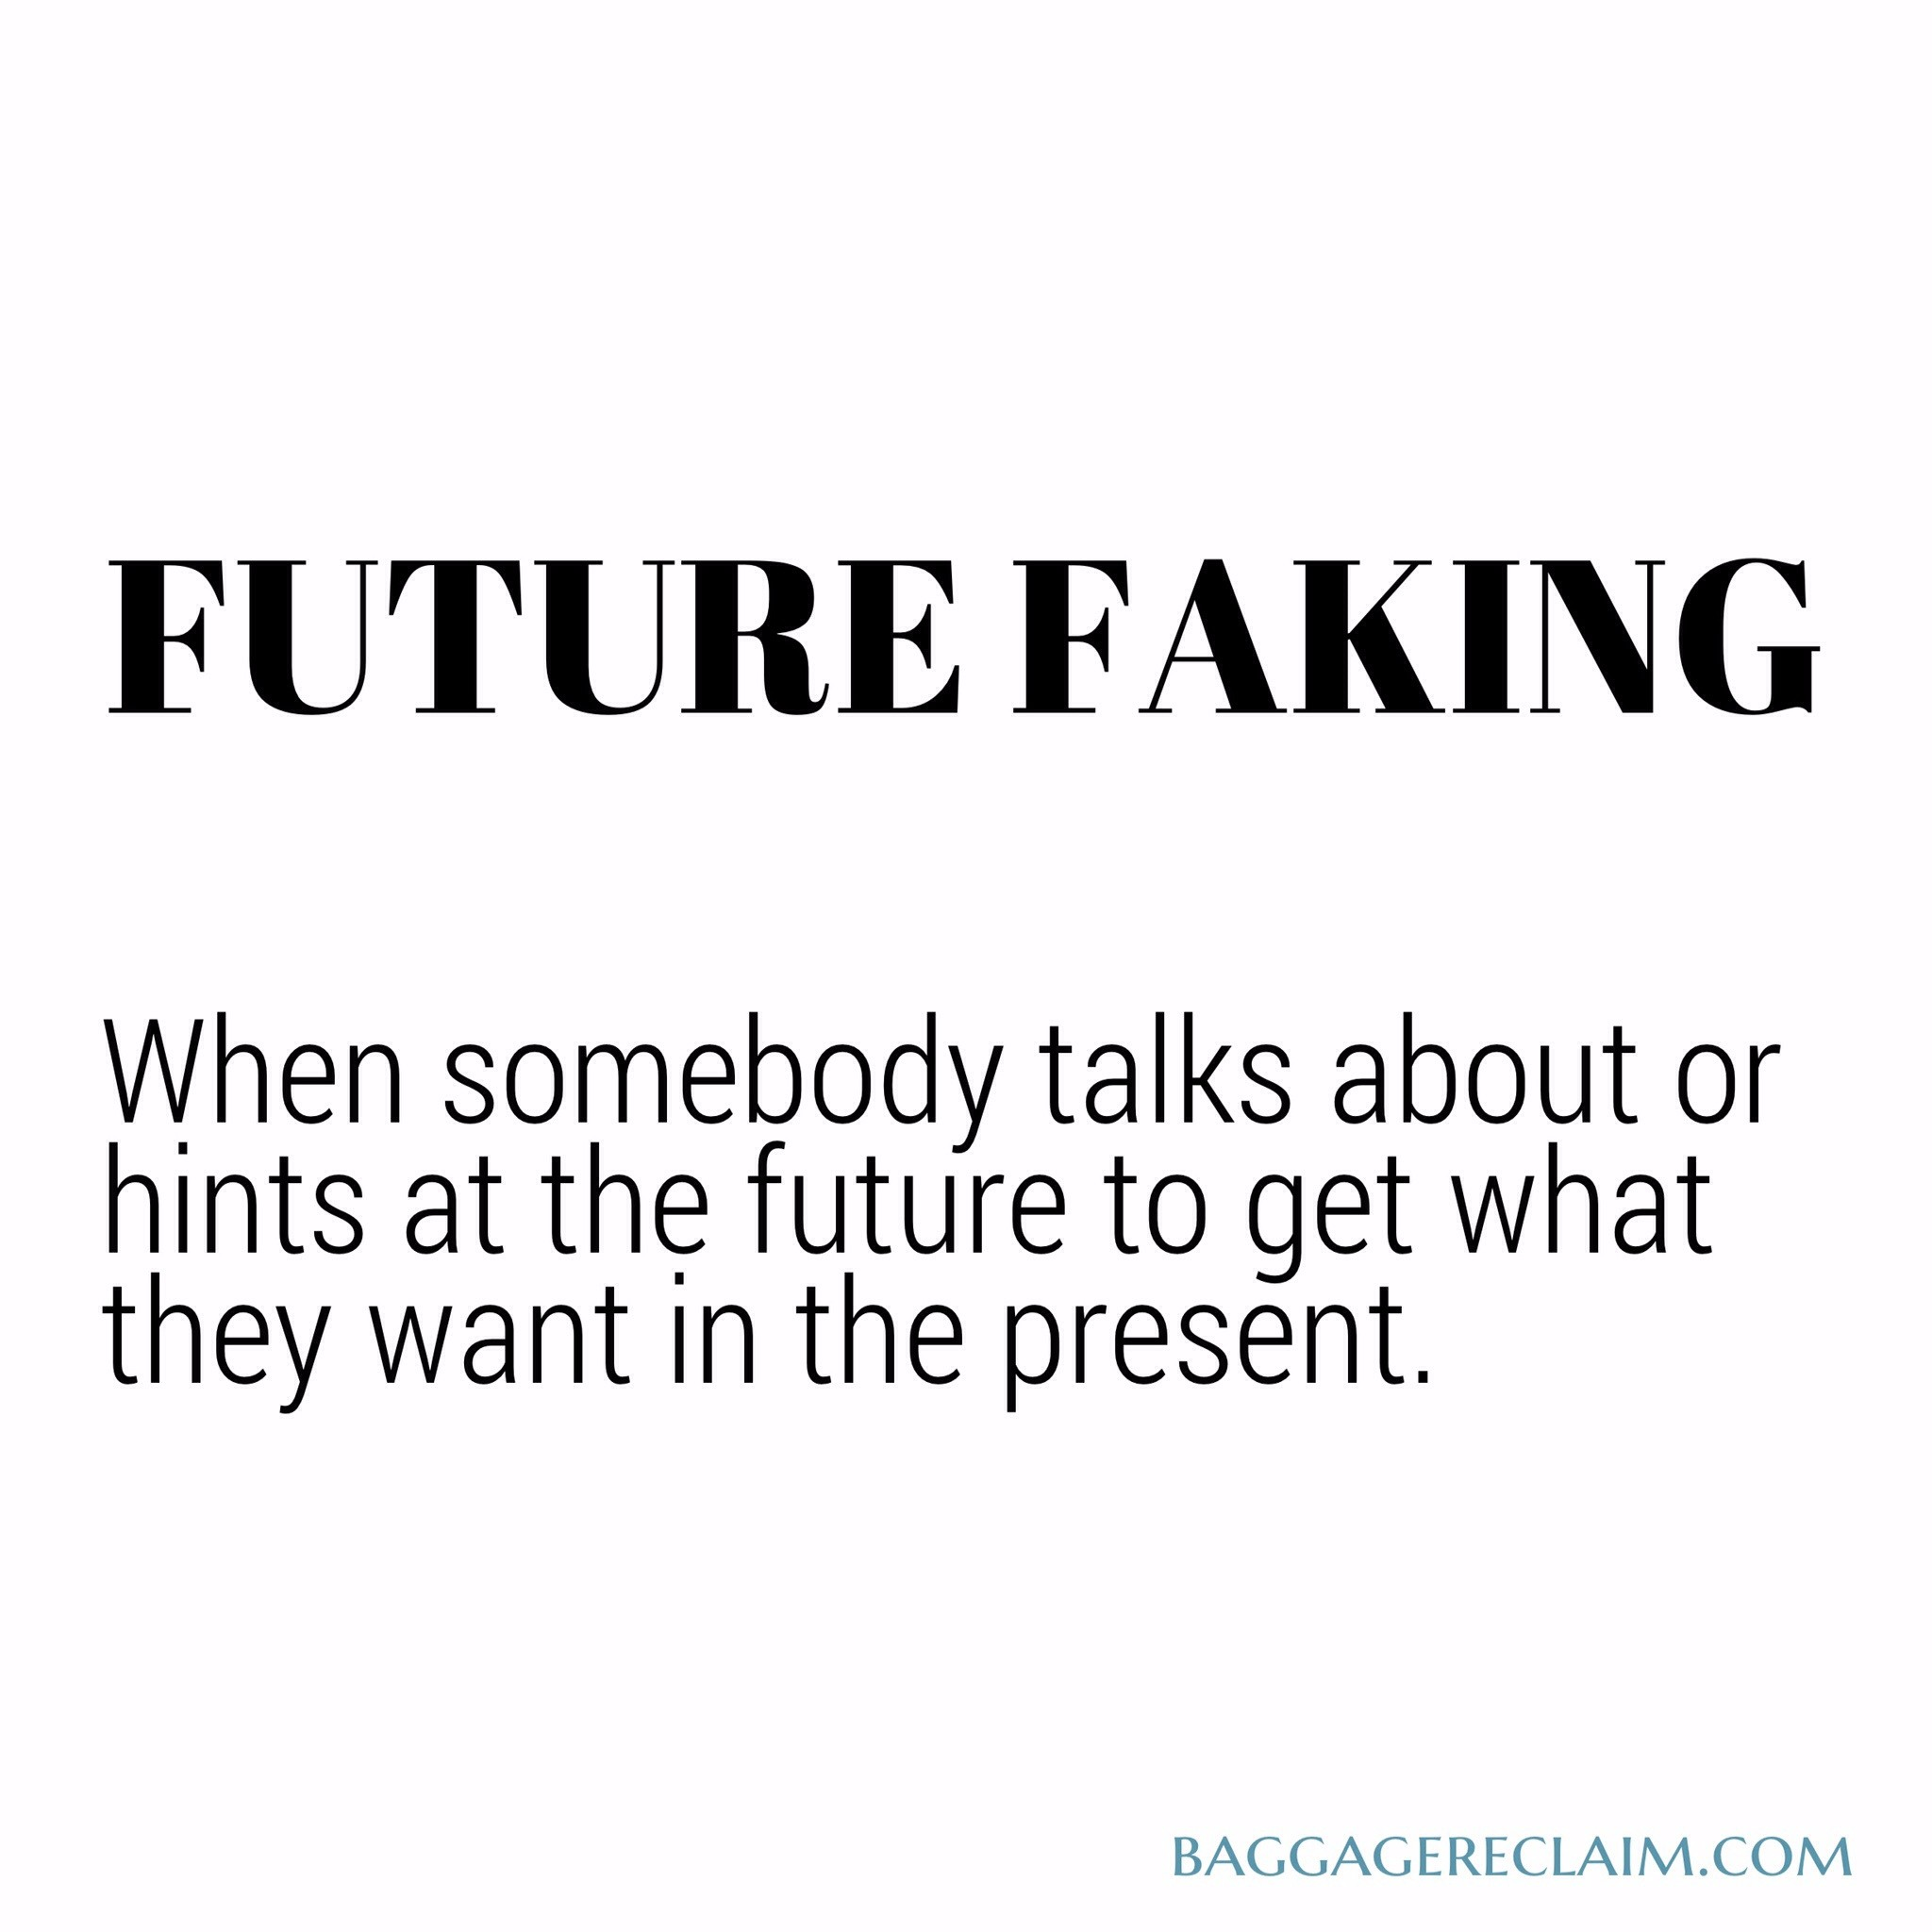 Future Faking is partly about using intentions to enhance self-image